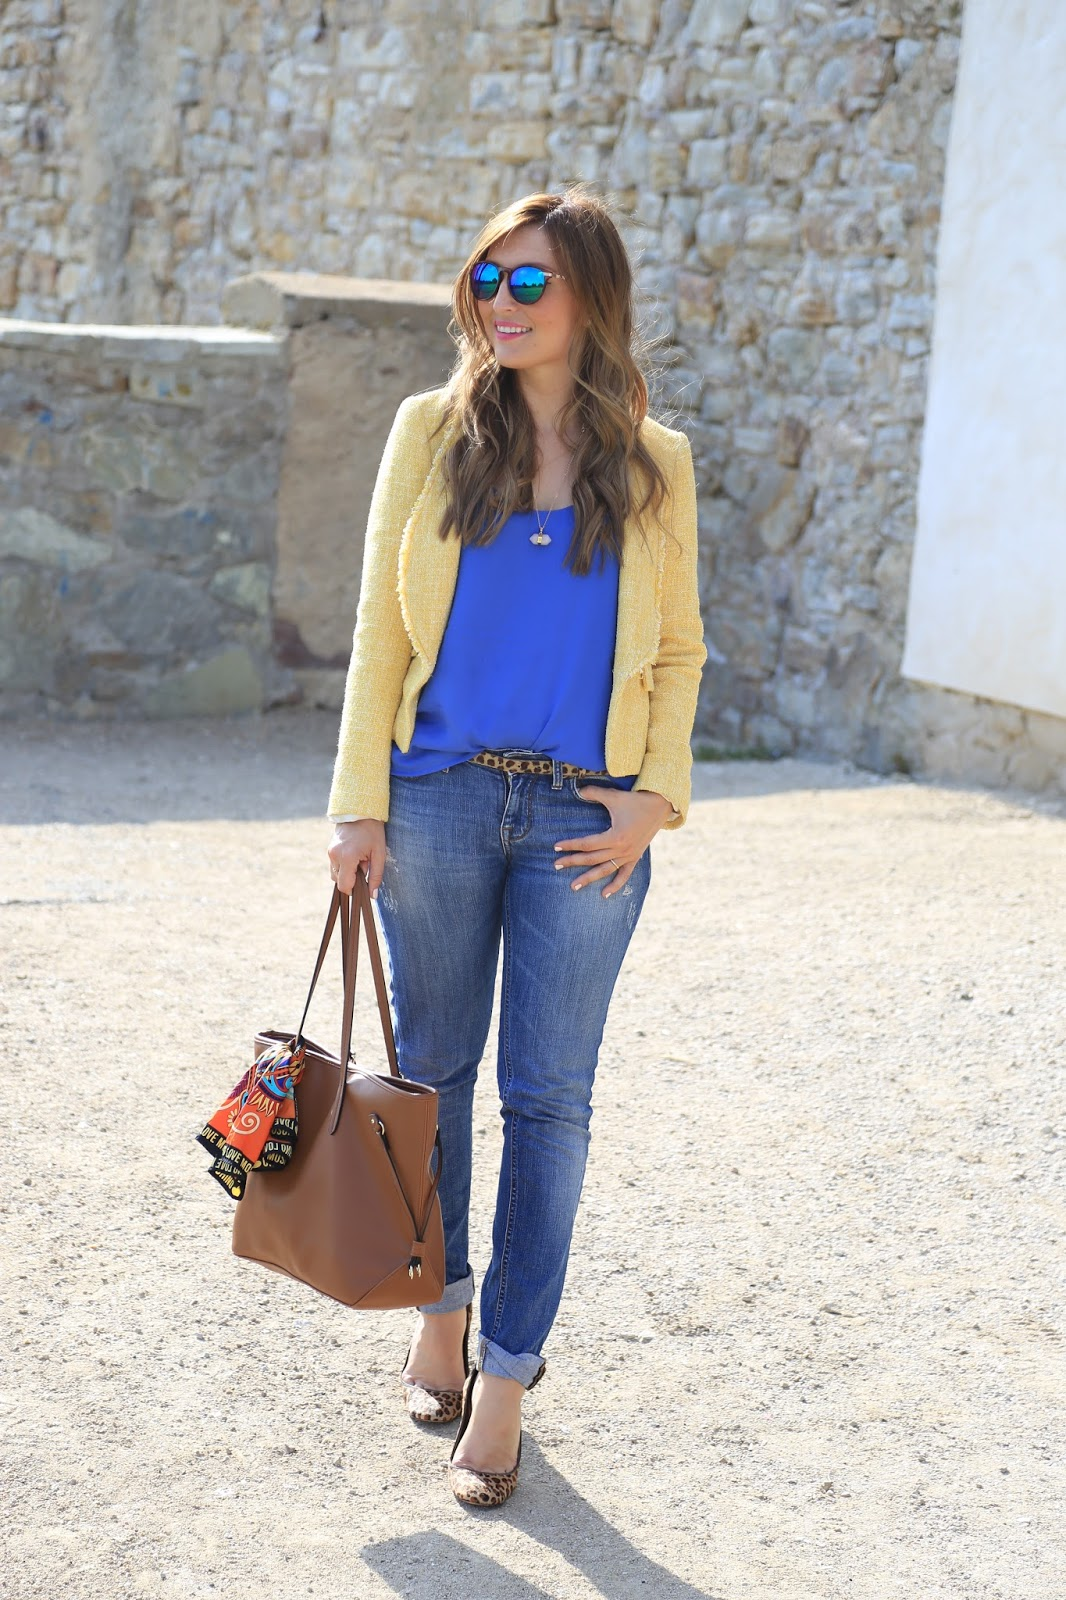 Sommer Looks Blogger - Fashionblogger - German Fashionblogger - Gelber Blazer - Olivia Palermo Look - NY Look